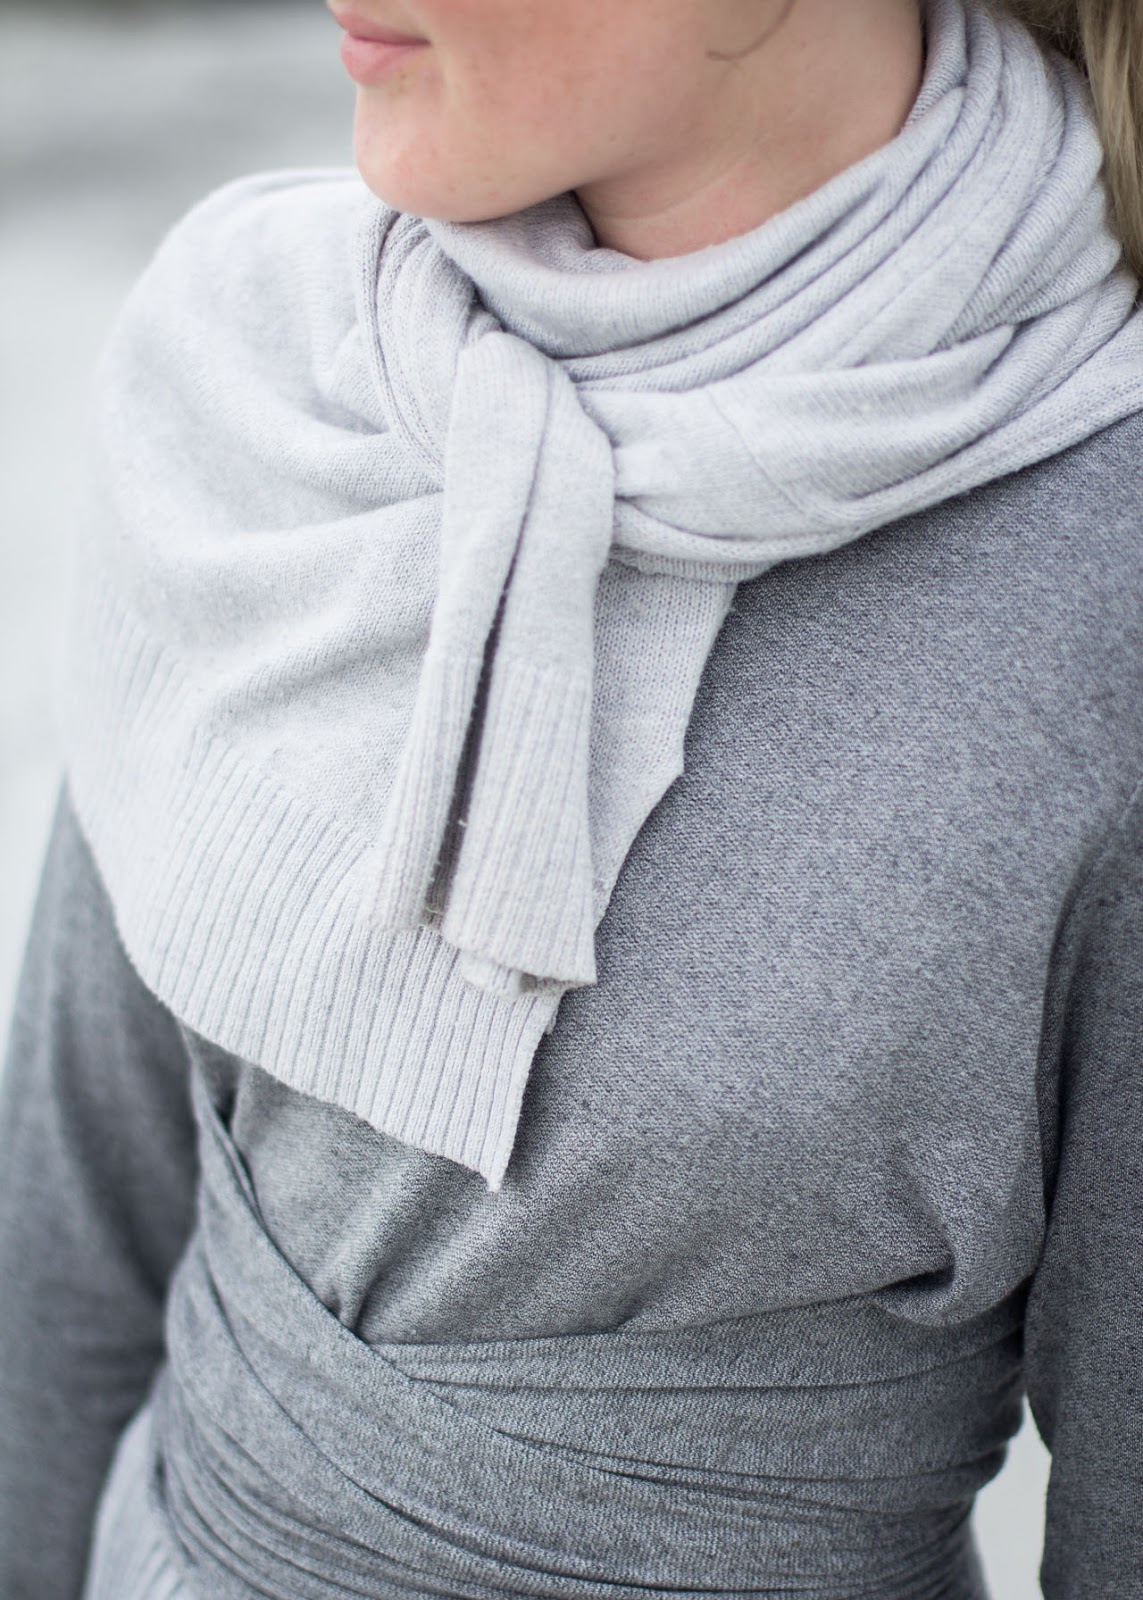 How to style a sweater as a scarf - Canadian Fashion / Style Blogger - H&M